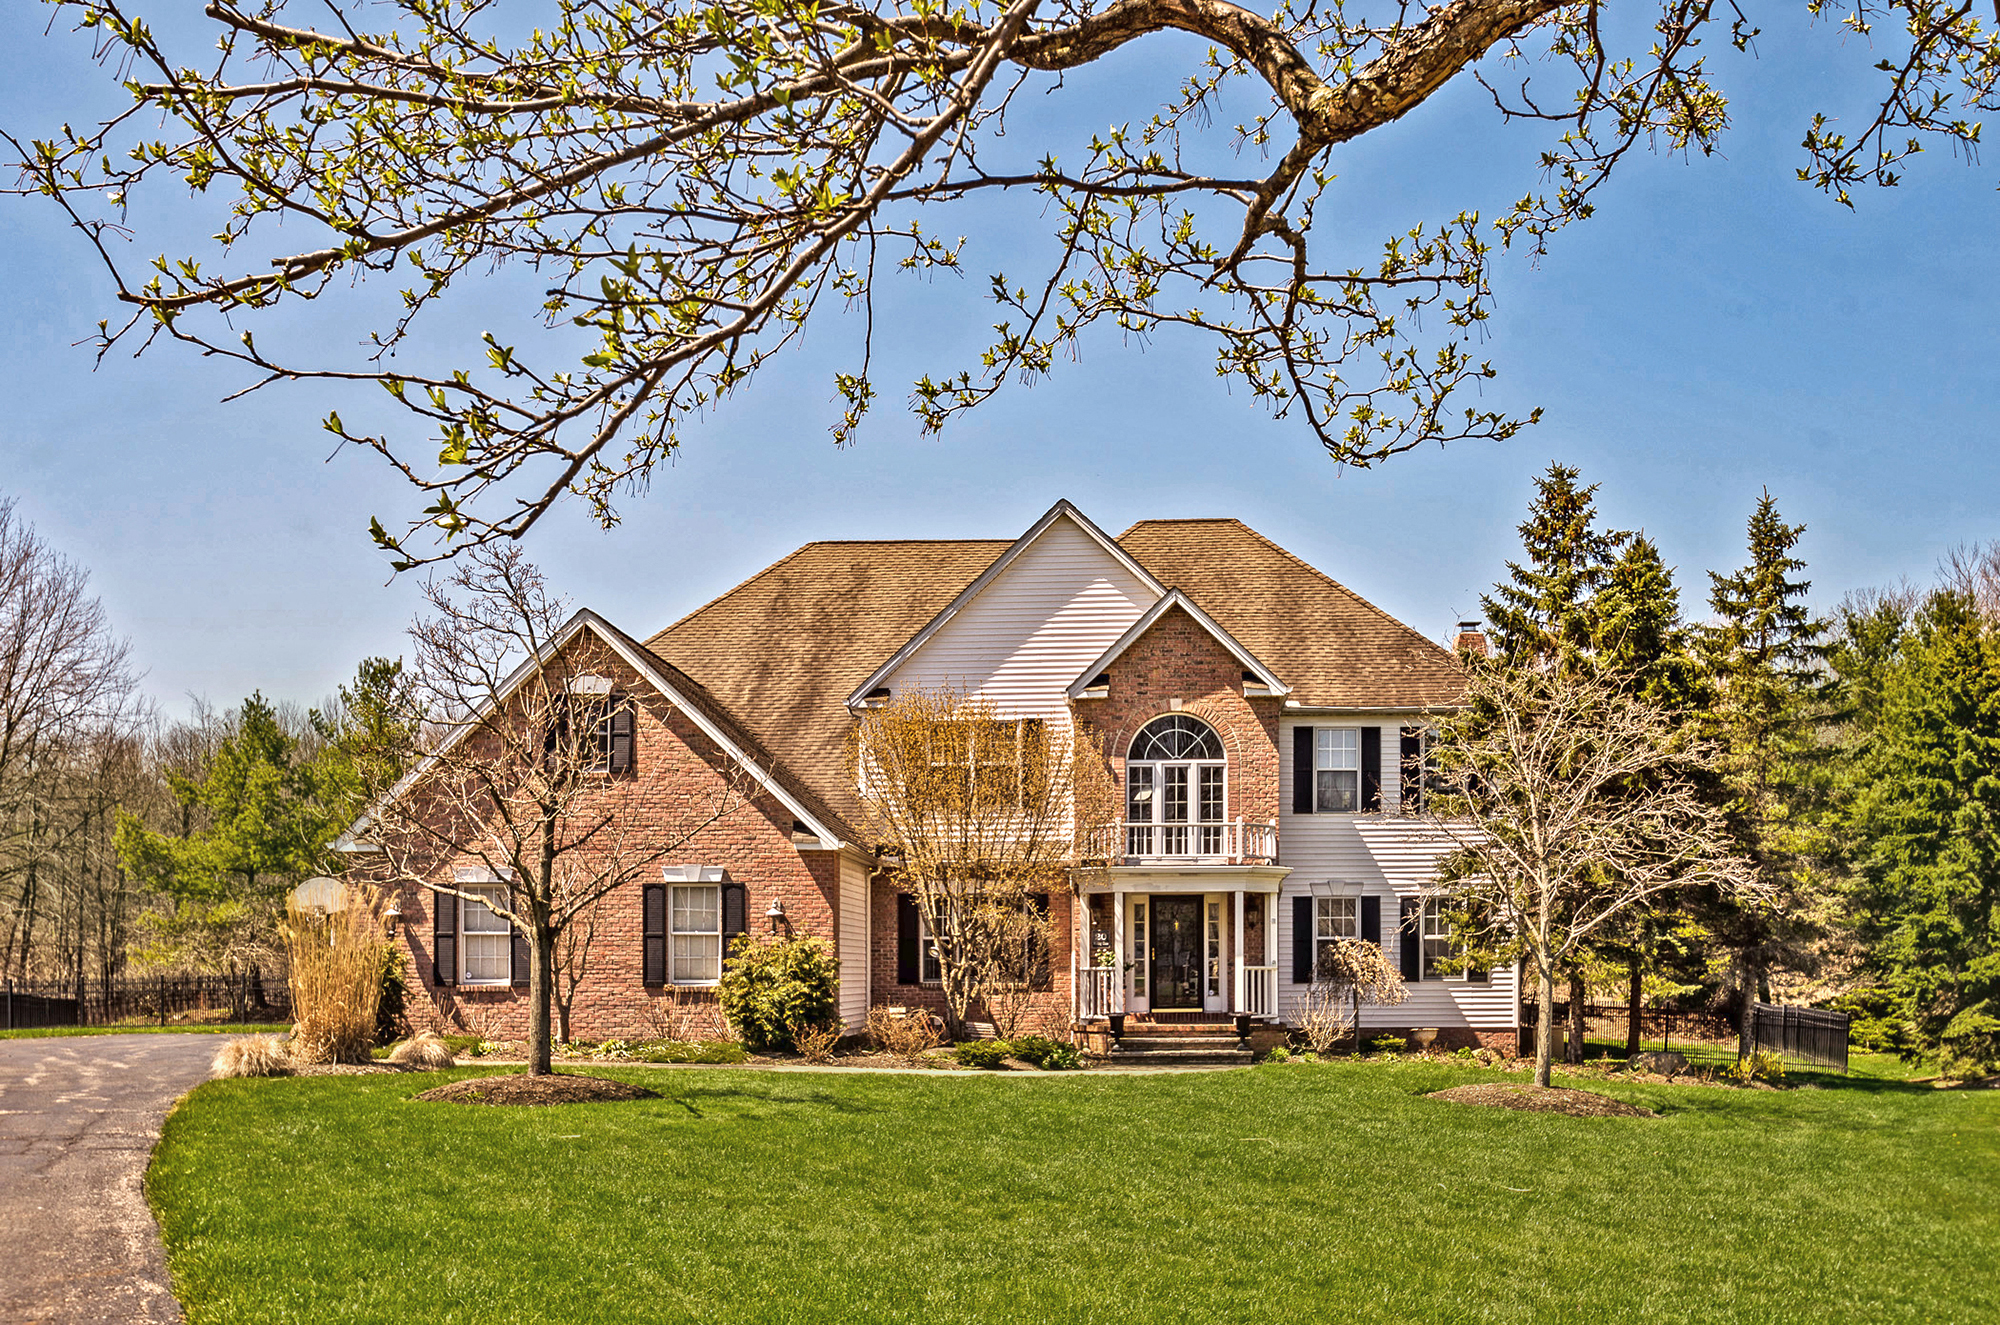 Exterior of 20 Wilding Chase Chagrin Falls OH 44022